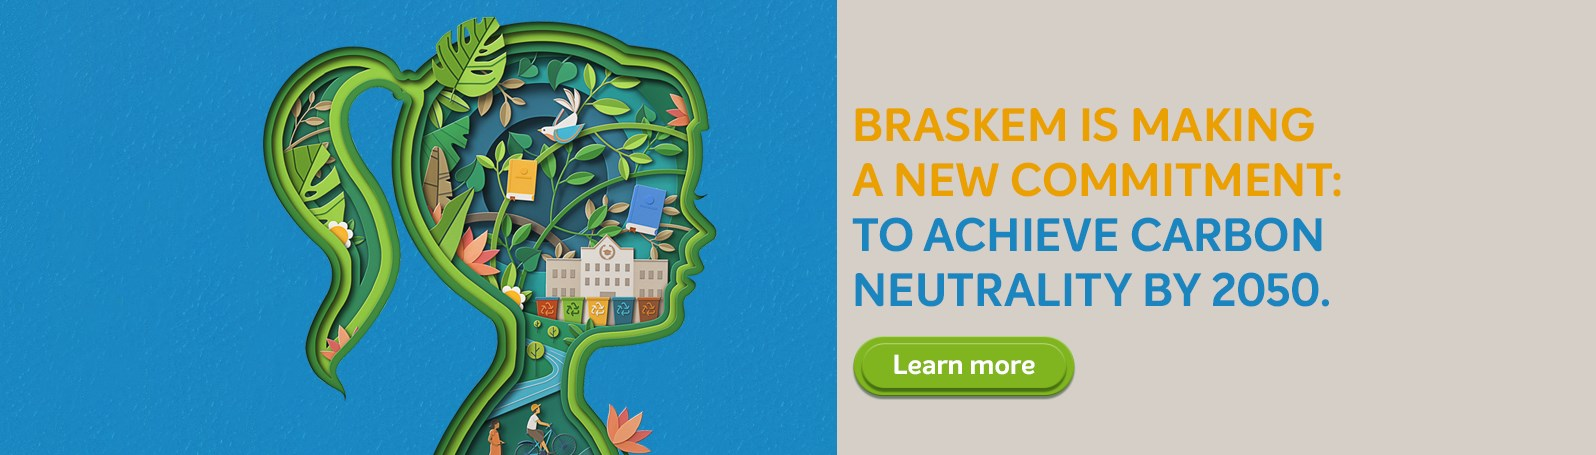 Braskem Affirms Commitment to Circular Economy and to Achieve Carbon Neutrality by 2050